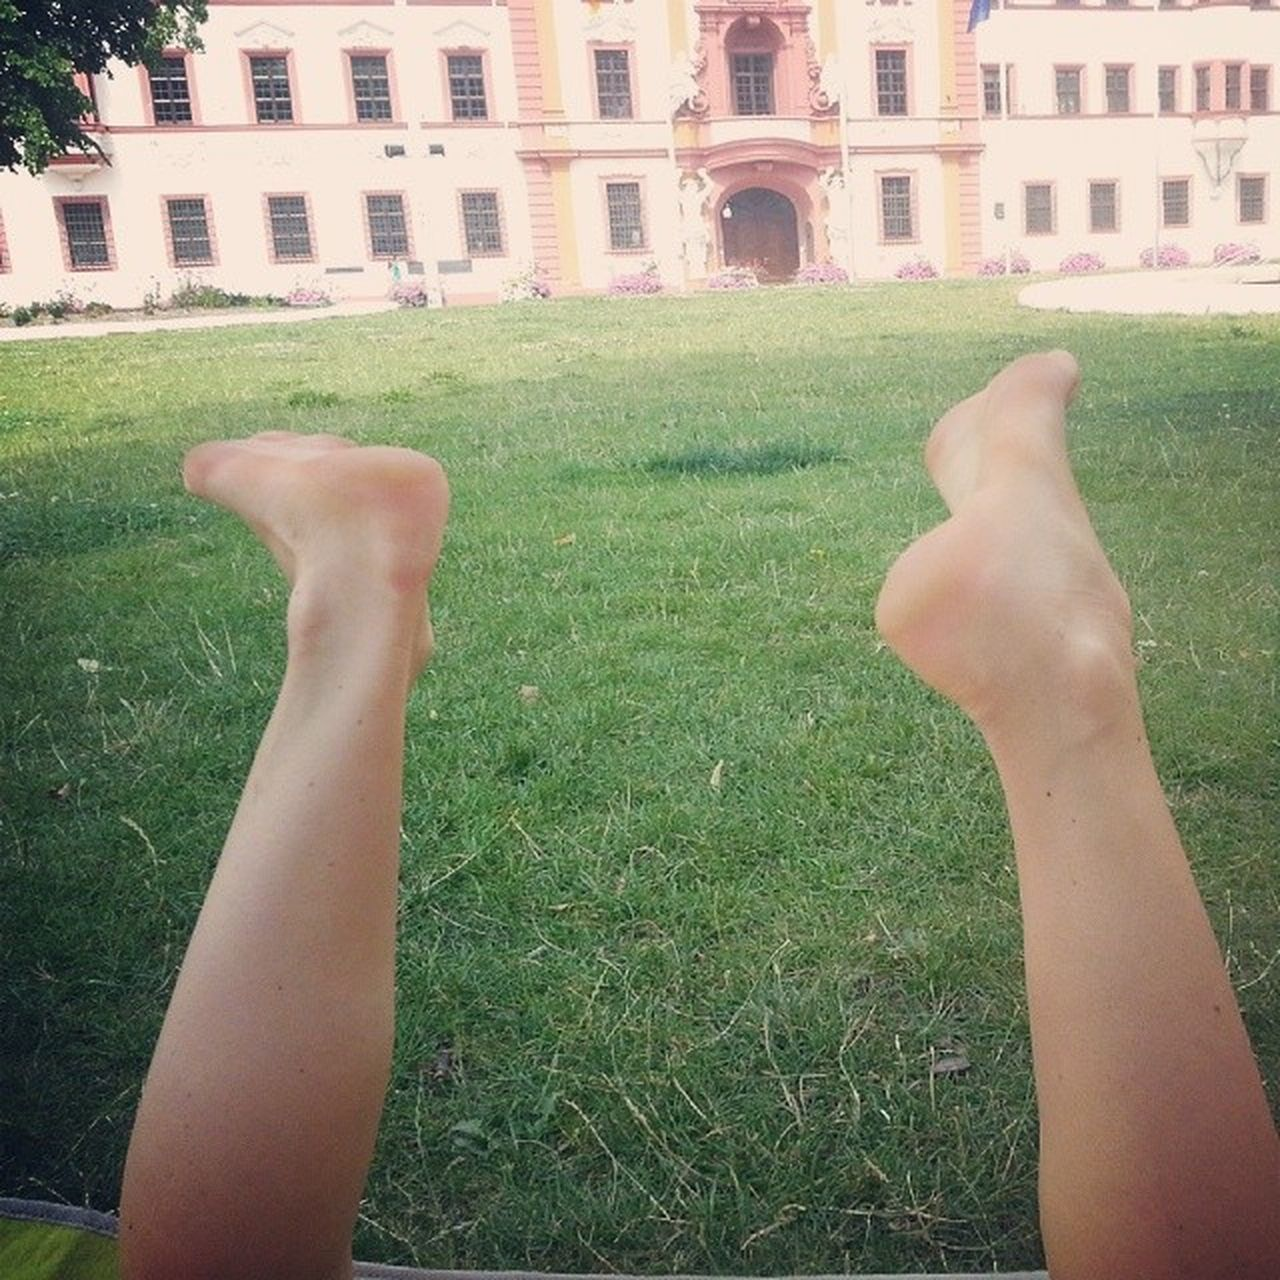 grass, real people, one person, personal perspective, human leg, human body part, building exterior, architecture, leisure activity, outdoors, lifestyles, day, lawn, low section, women, built structure, human hand, close-up, people